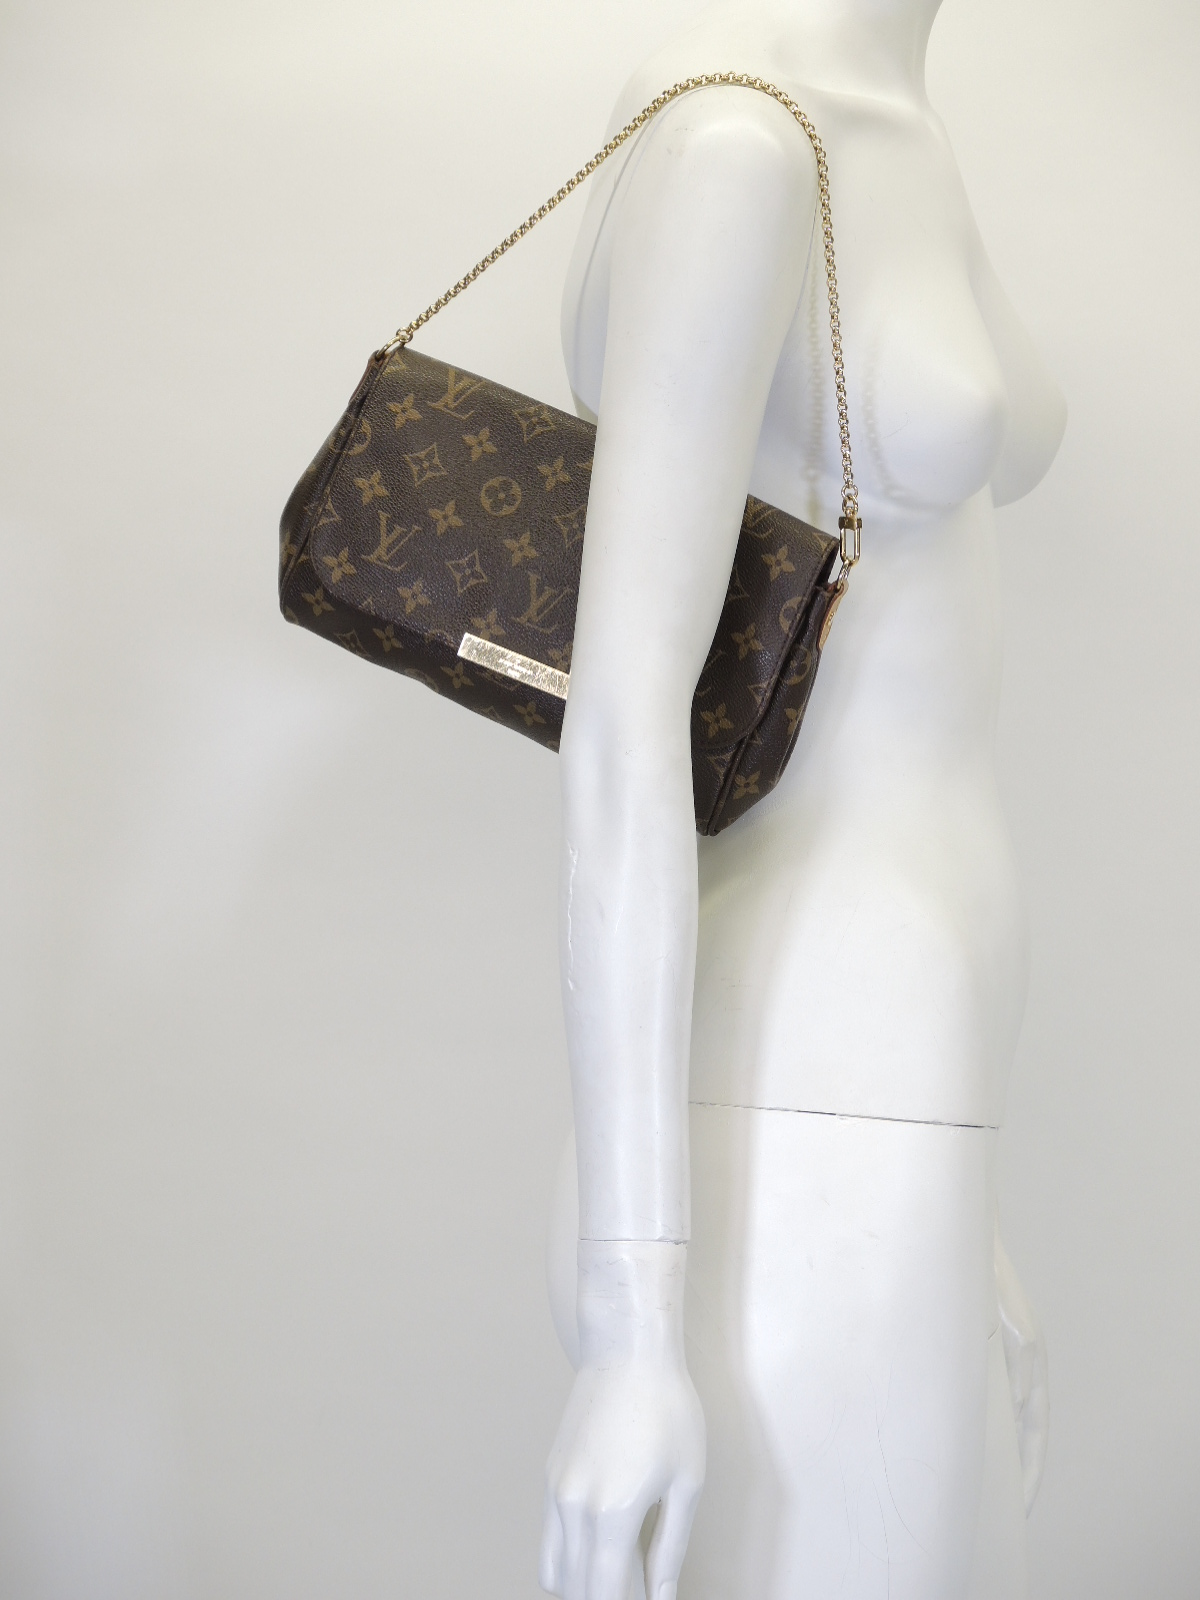 98b2634615e257 reduced prada logo crossbody bag nude neutrals 0becd 8d45b; netherlands  prada olive leather medium double zip tote sold d65a9 30d30